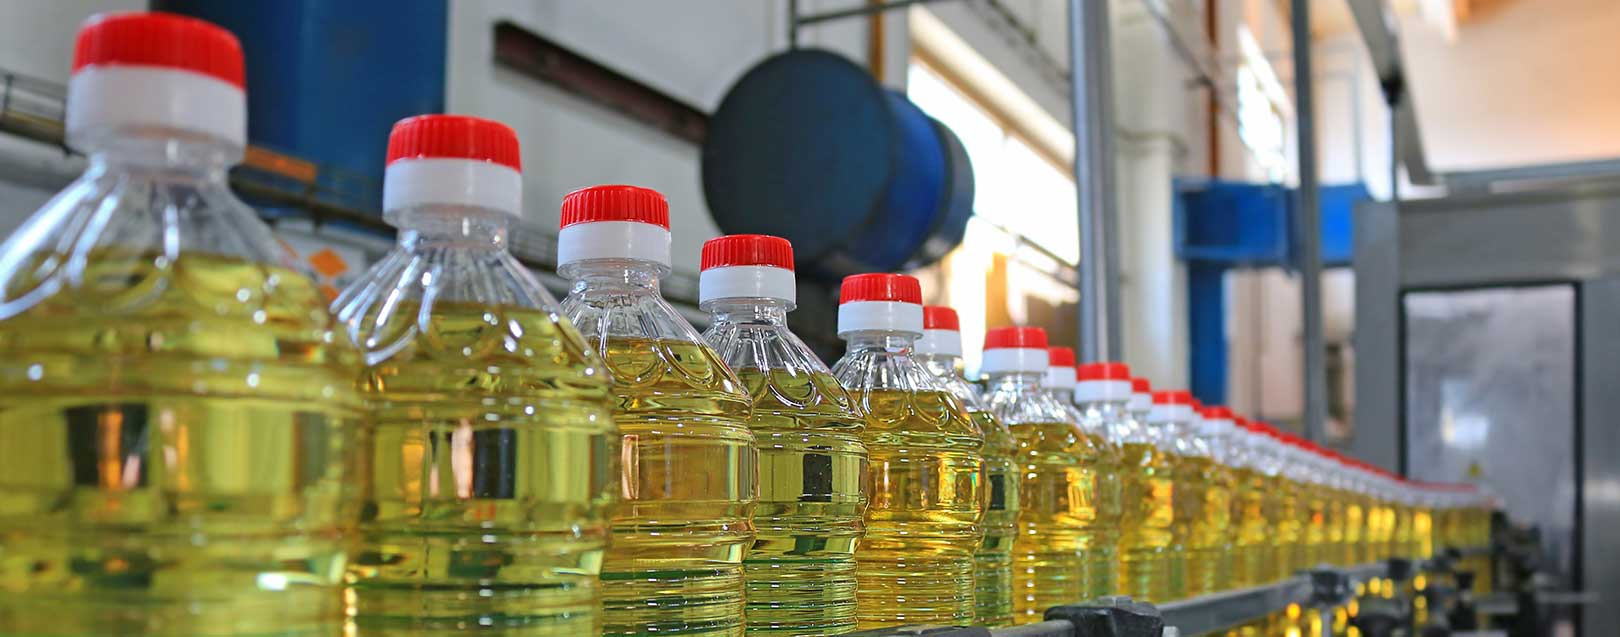 India lifts 9-year ban on bulk export of certain edible oils